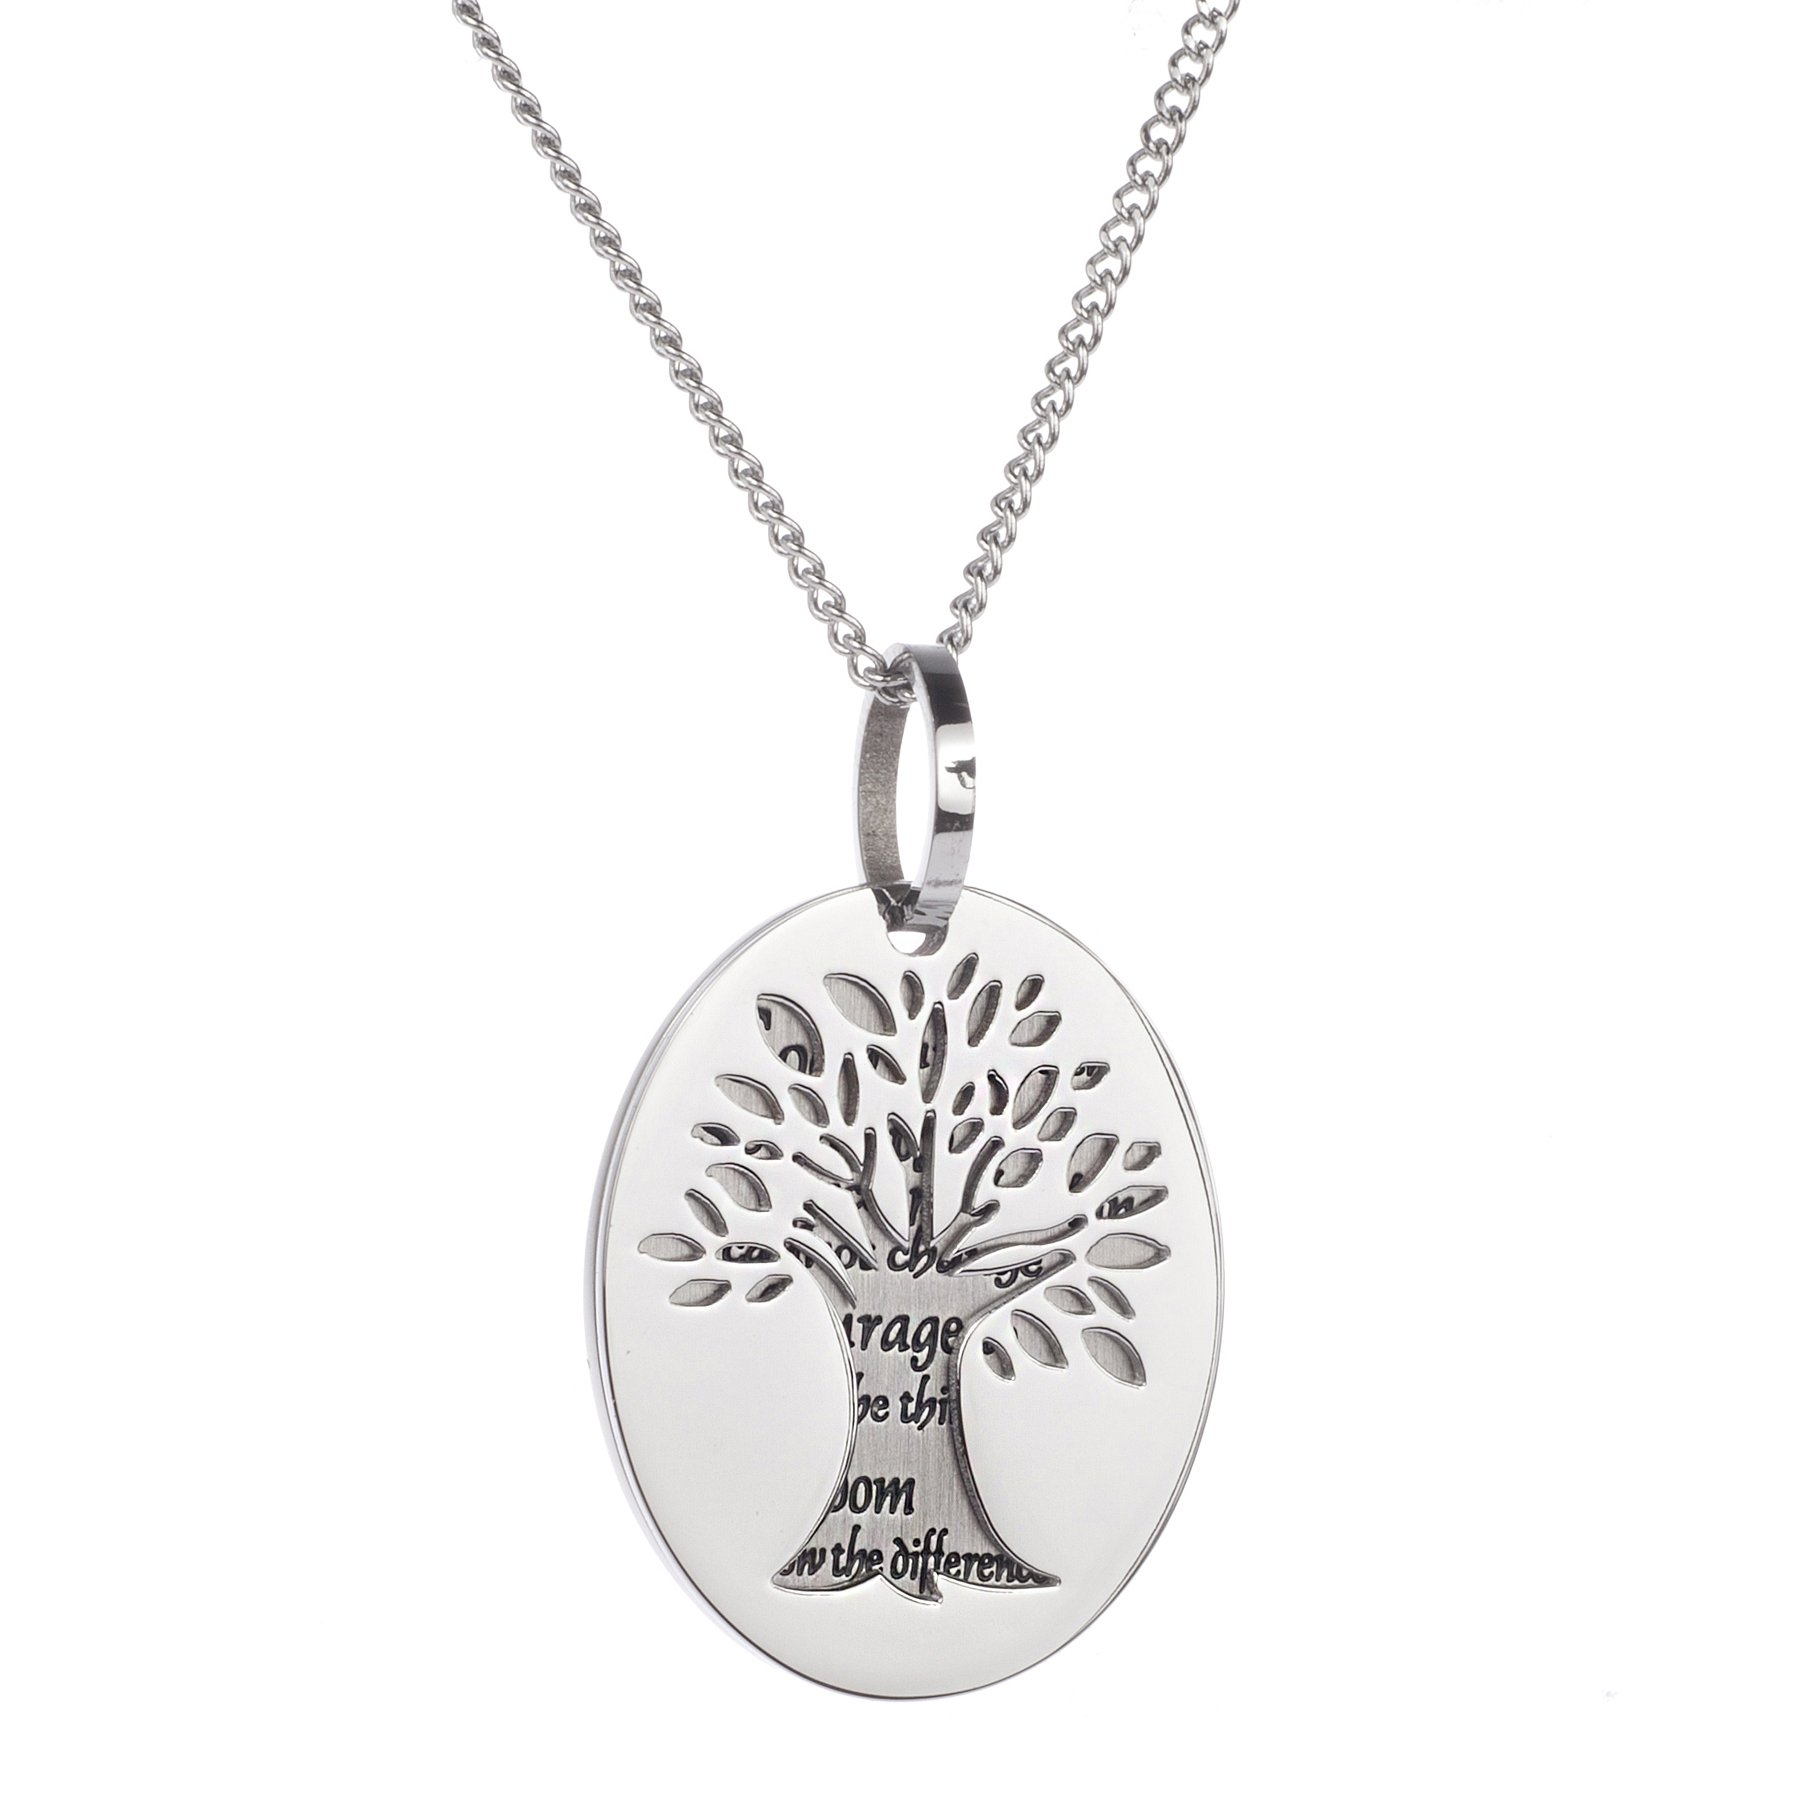 img serenity pendant moon stamped products necklace prayer set sam